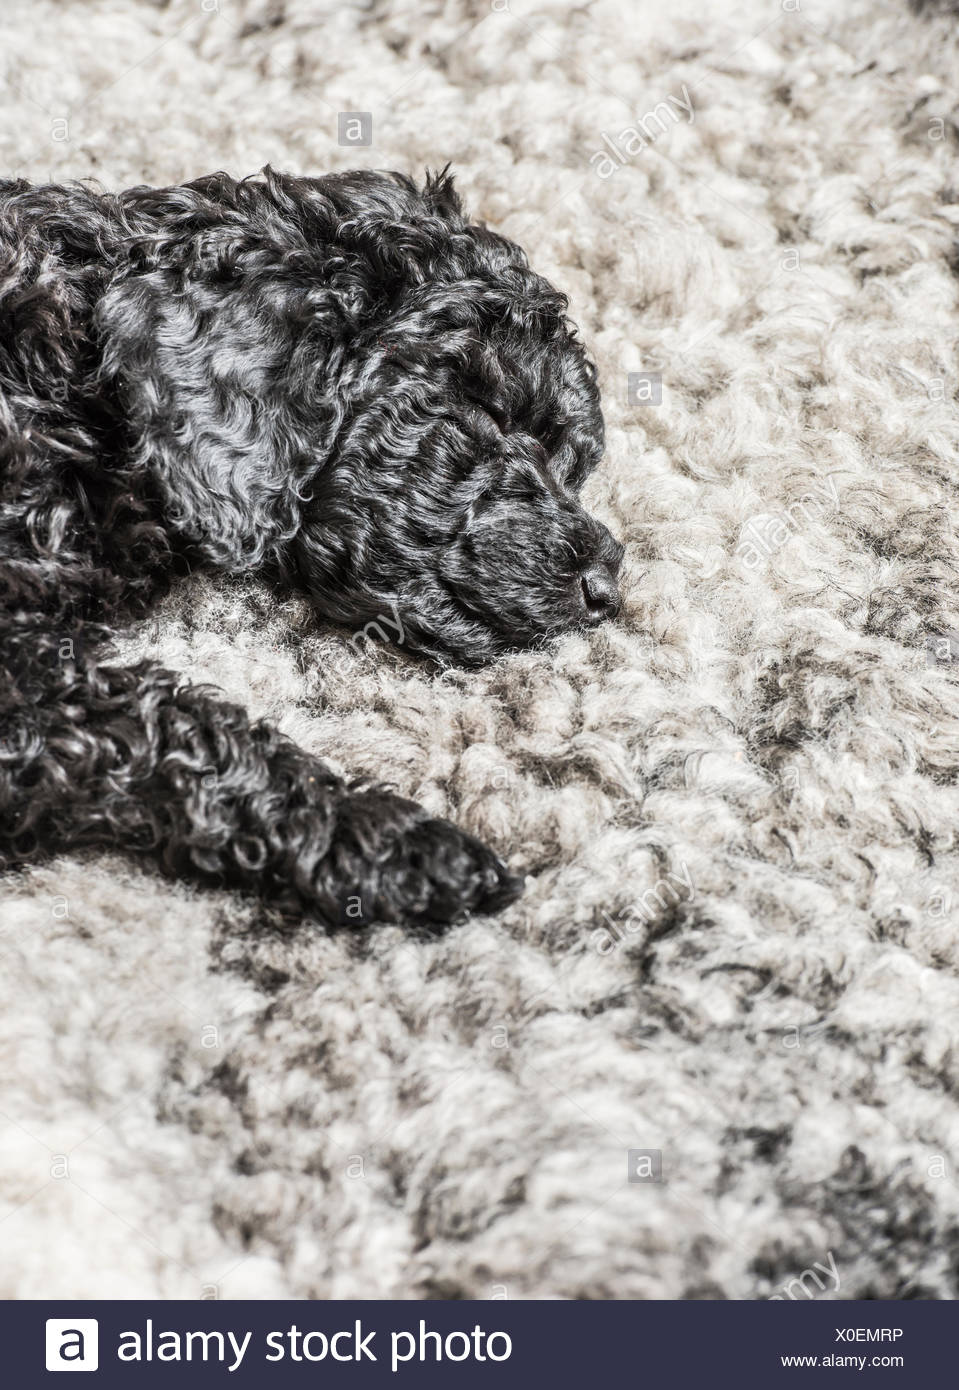 Black poodle puppy sleeping on grey fur - Stock Image